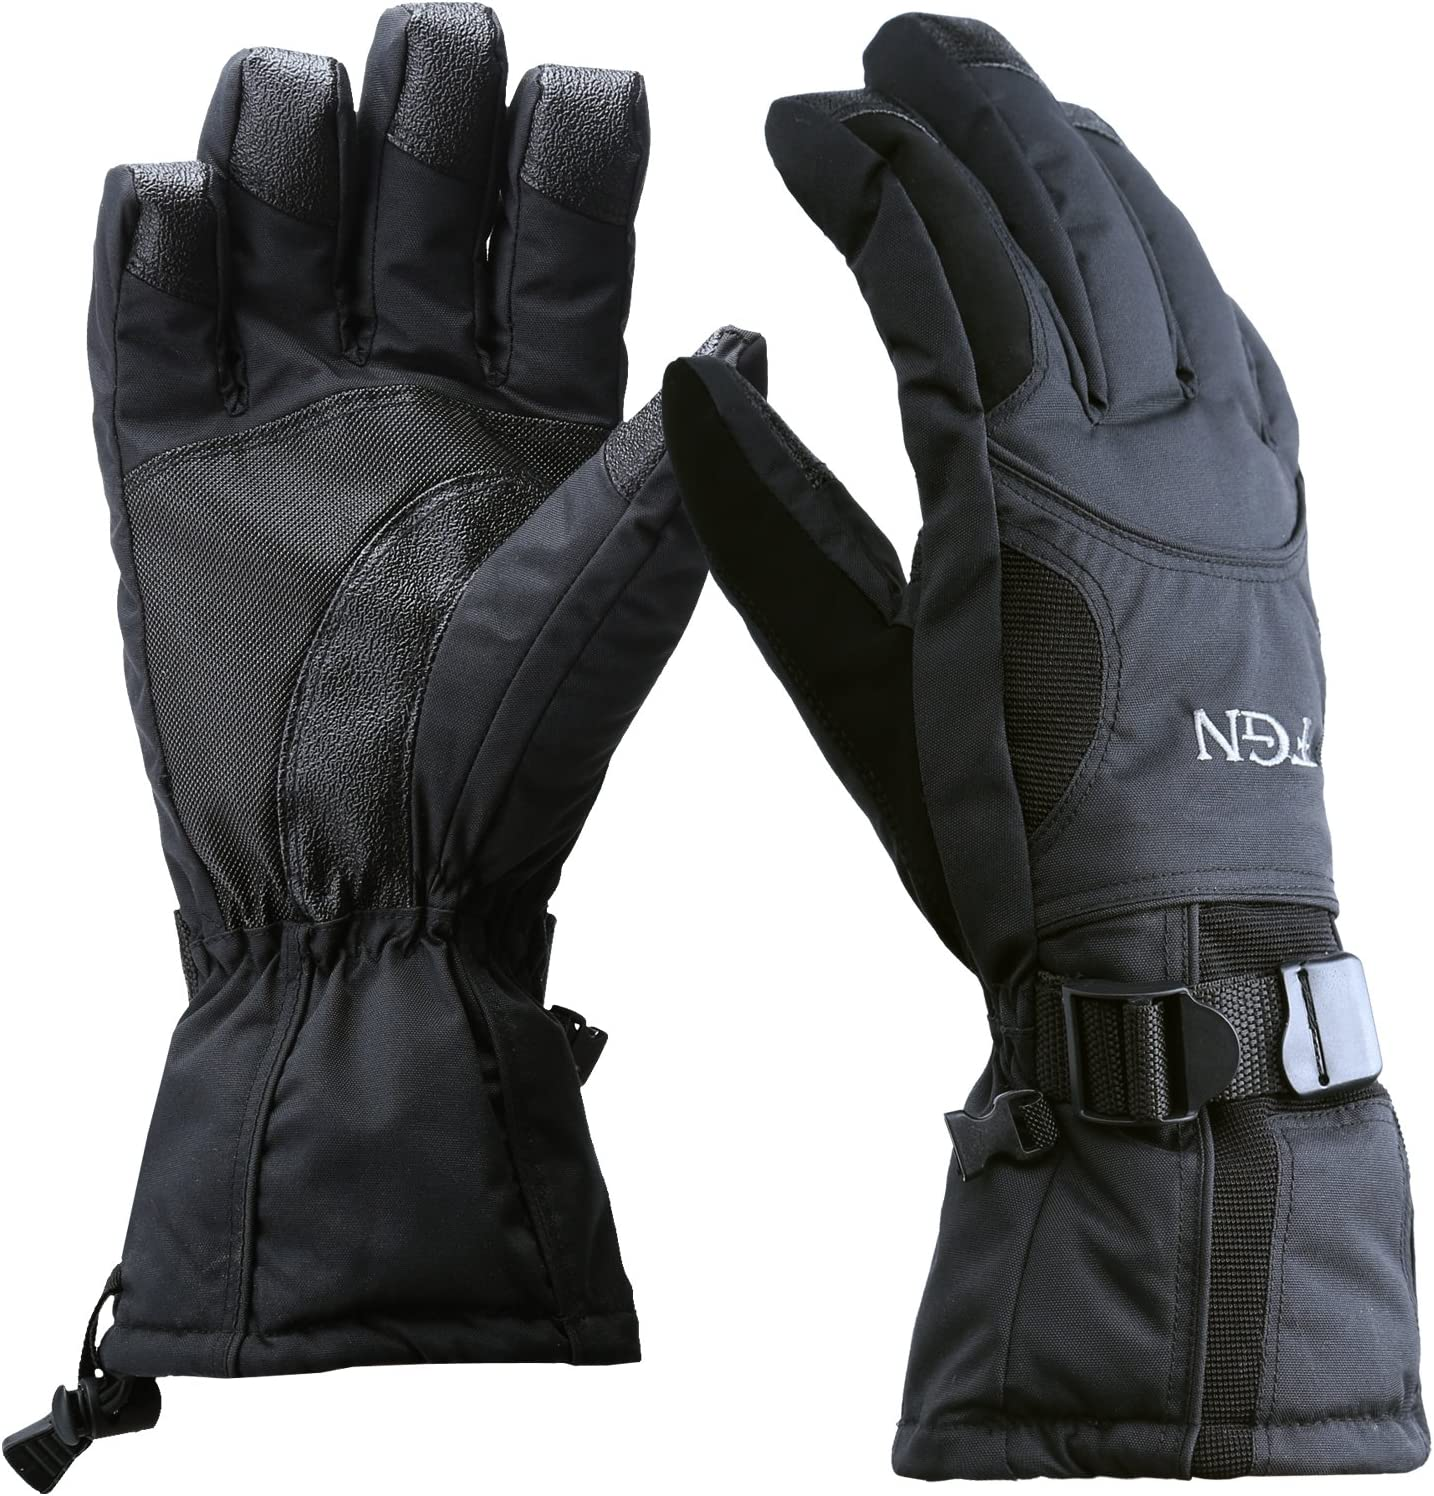 Waterproof Winter Gloves Warm 3M Thinsulate Ski Mittens for Cold Weather Snowboard Snowmobile -30℃ EXski 22℉